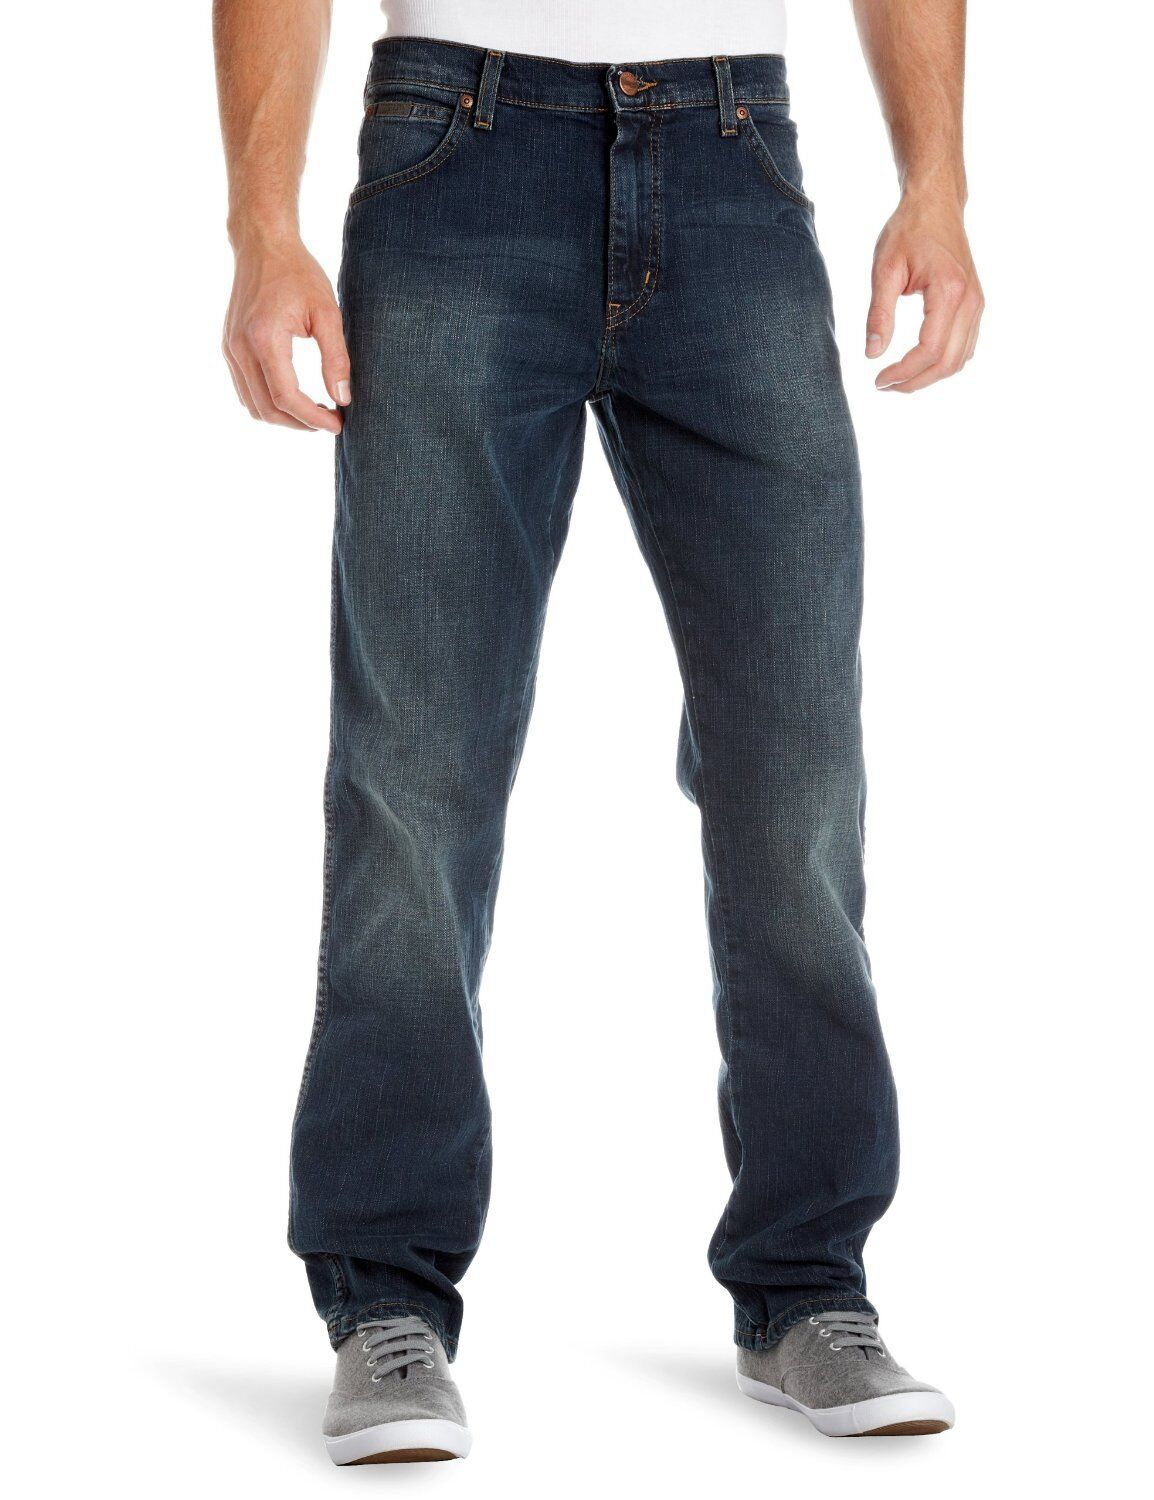 Wrangler Texas Regular Fit Stretch Jeans Dark bluee New Men's Vintage Tint Faded